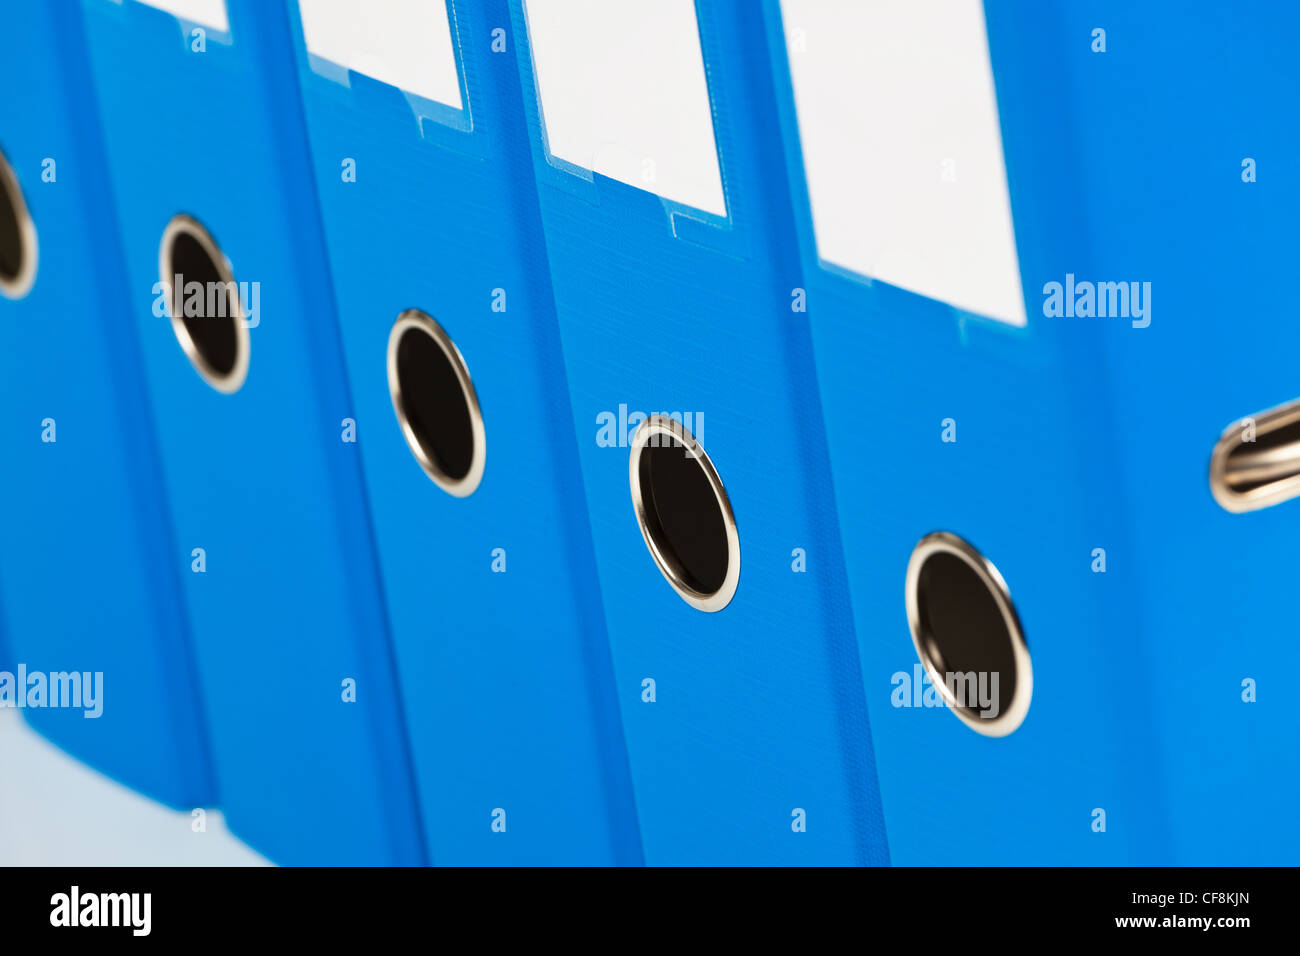 binders filled with documents and documents. retention of contracts. - Stock Image